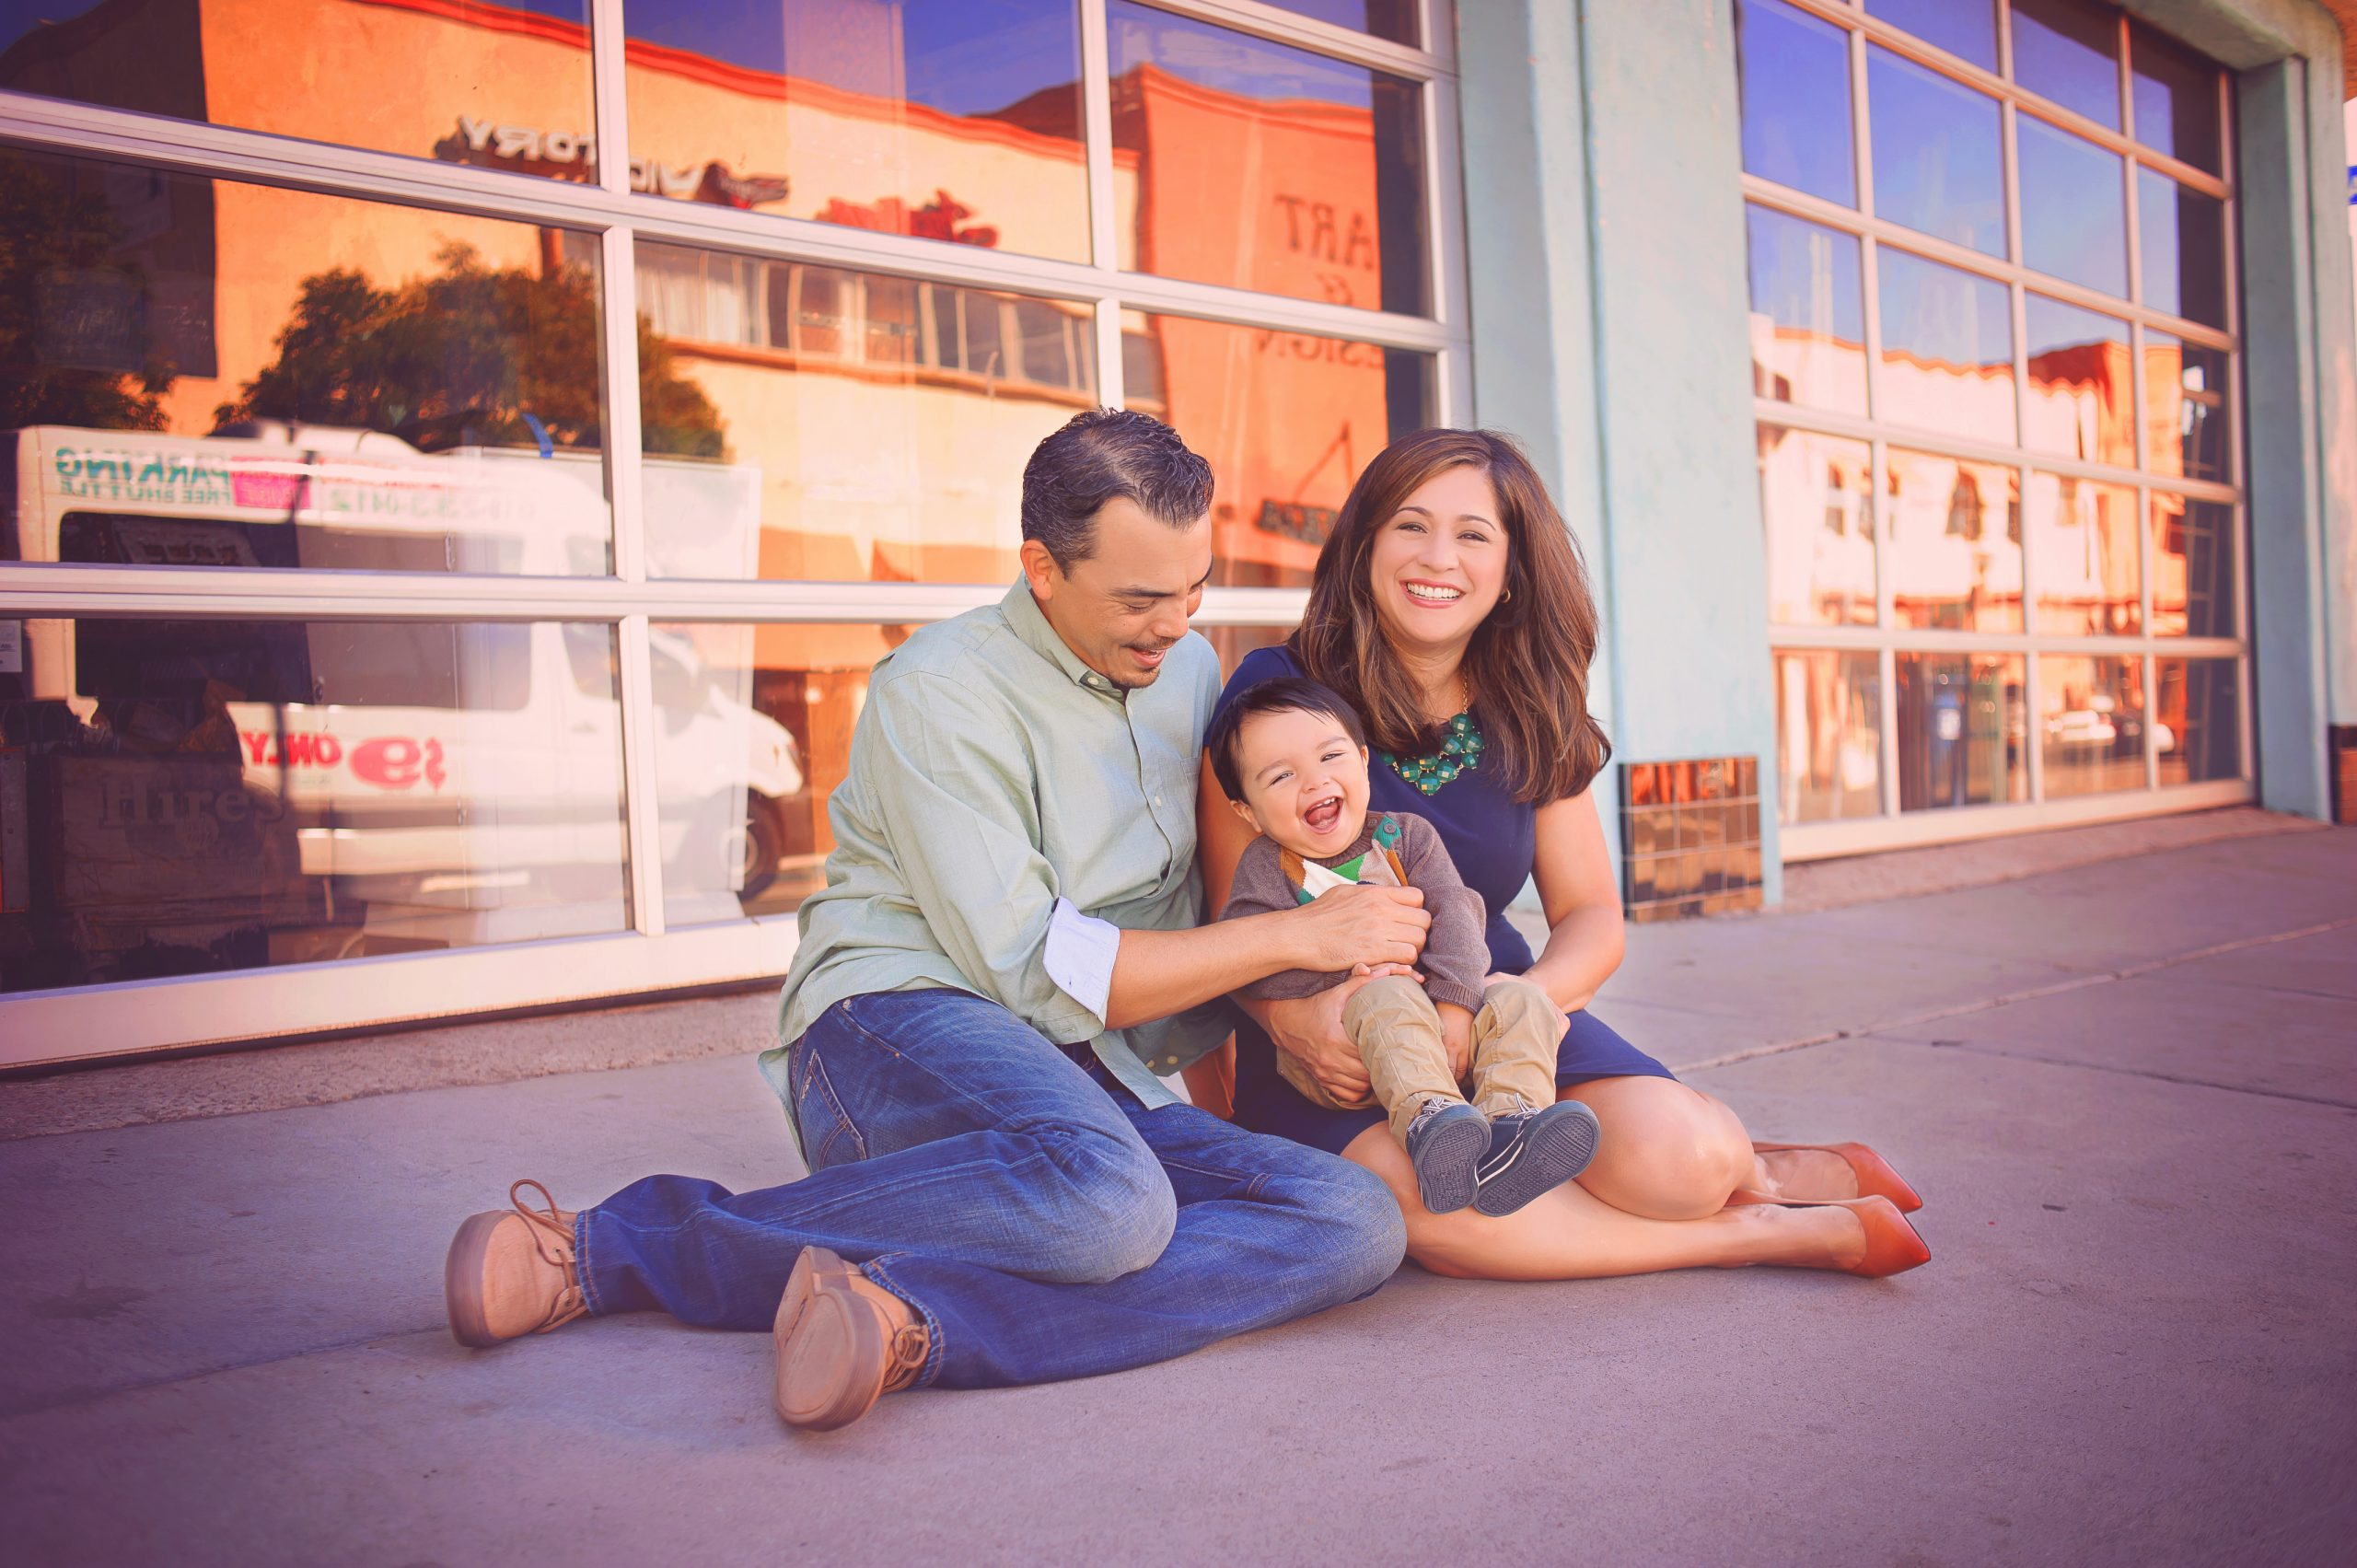 Family photographer in San Diego offering mini sessions